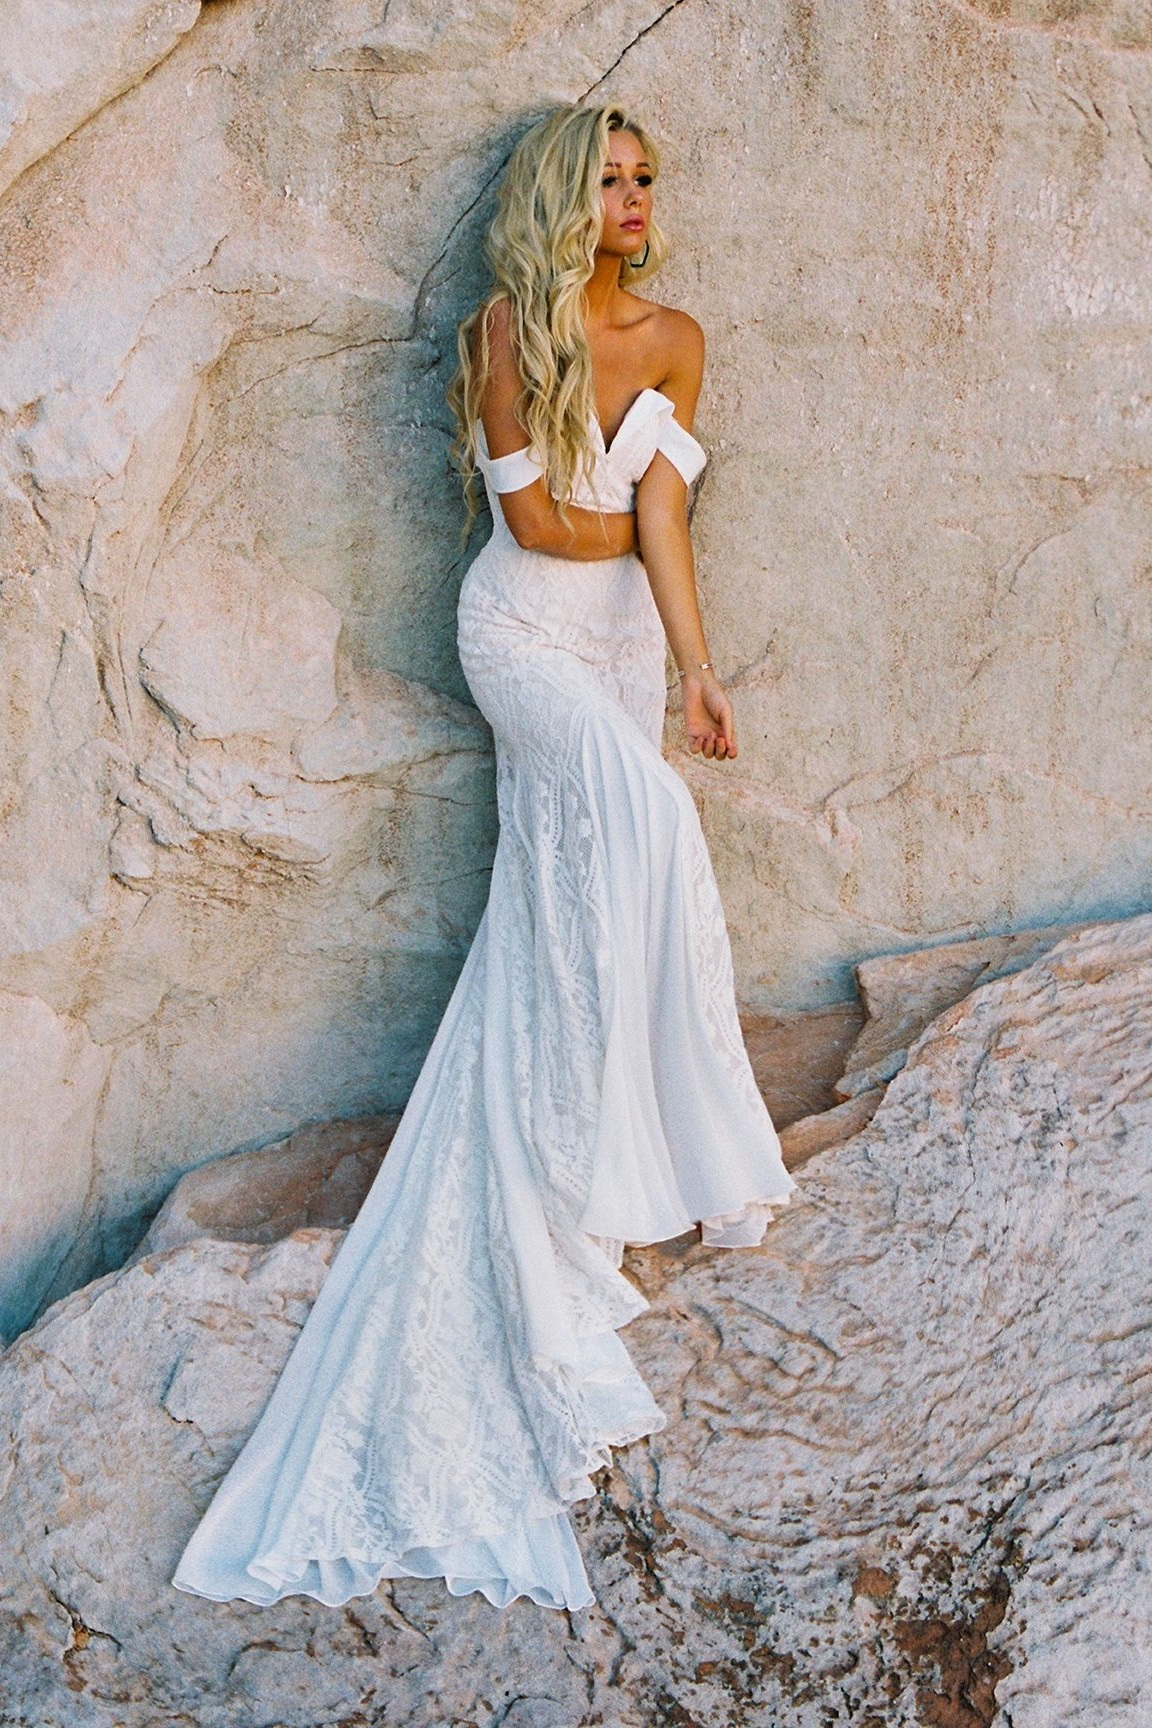 Wilderly Bride Wedding Dresses | Boho Off the Shoulder Lace Chiffon Wedding Dress